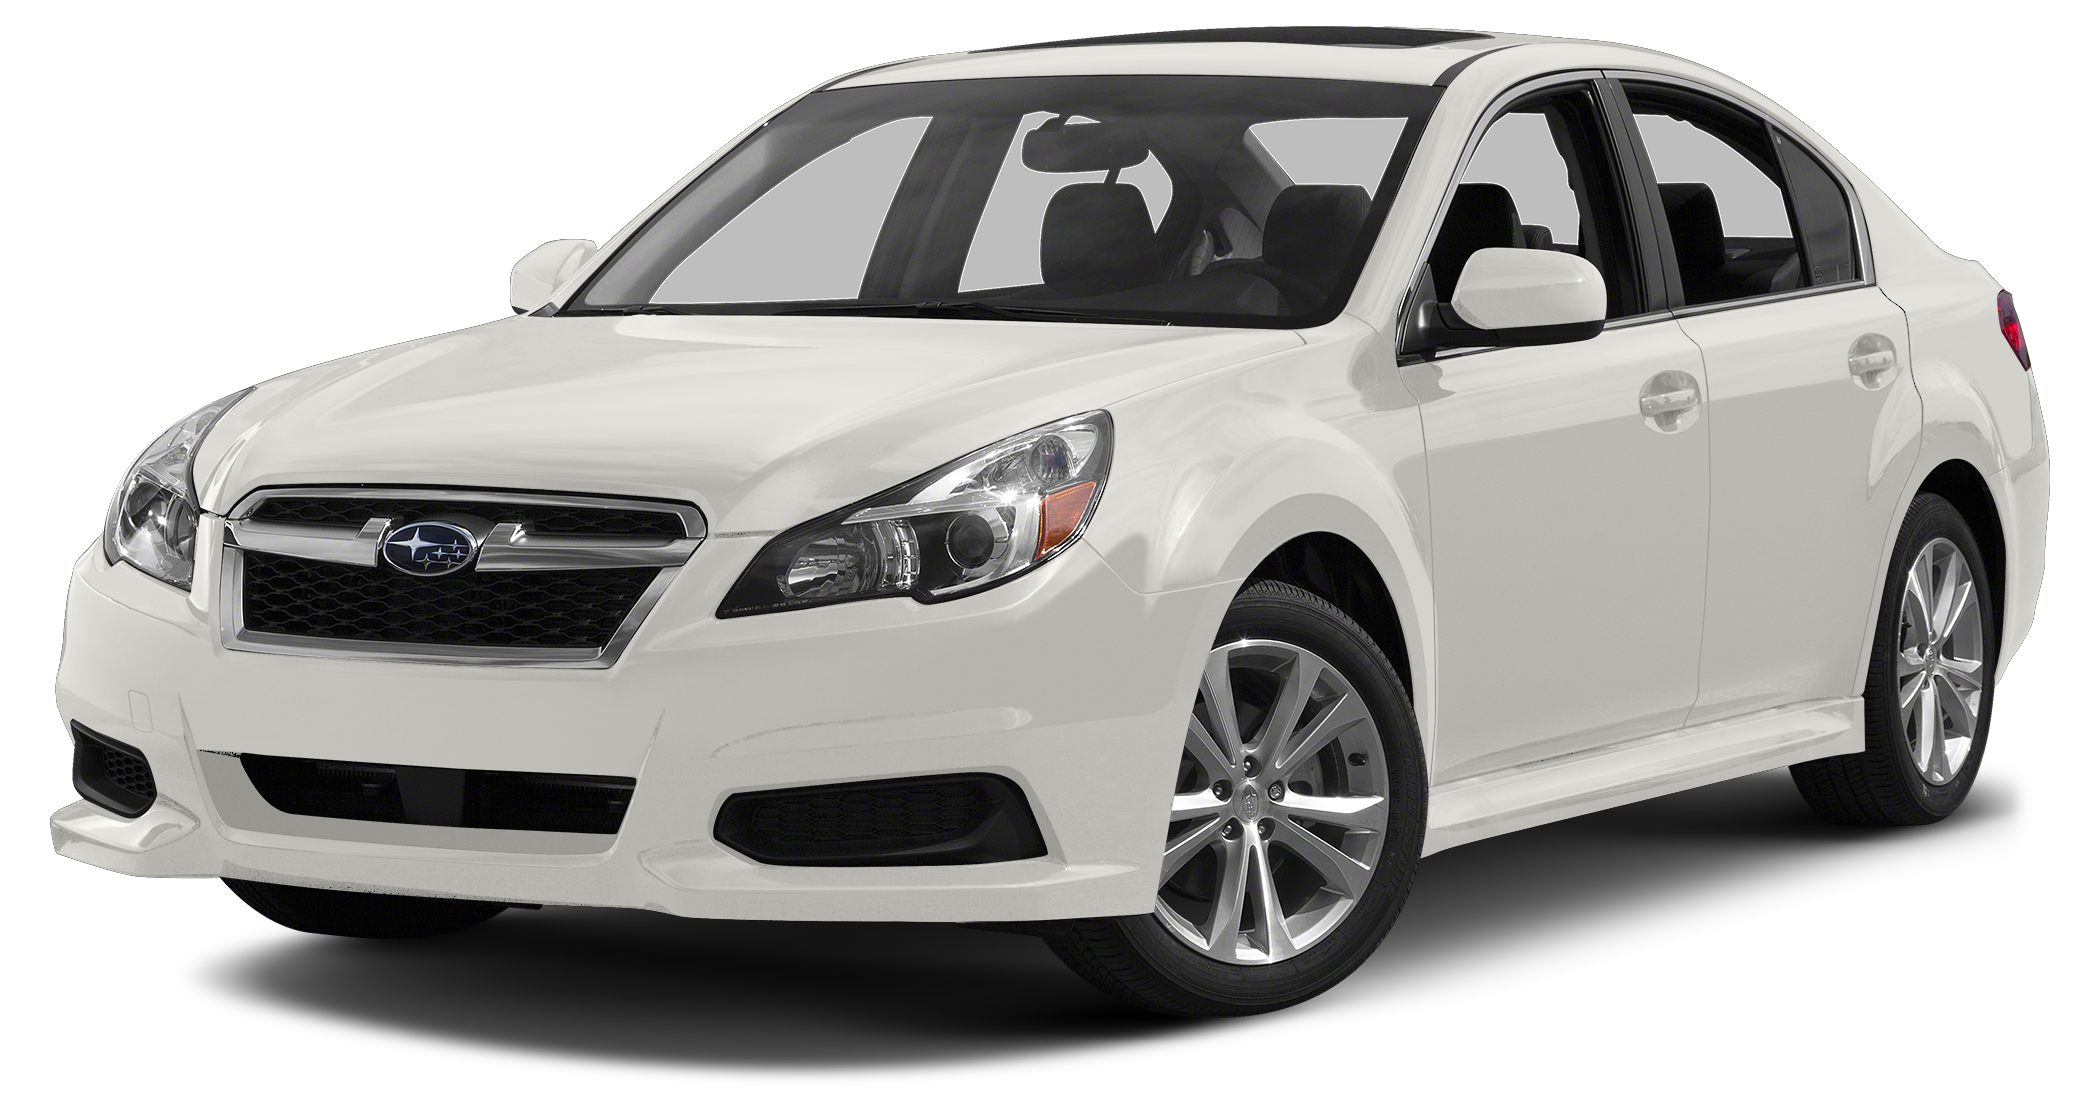 2013 Subaru Legacy 25i Premium How enticing is the tough resolve of this rugged 2013 Subaru Legac